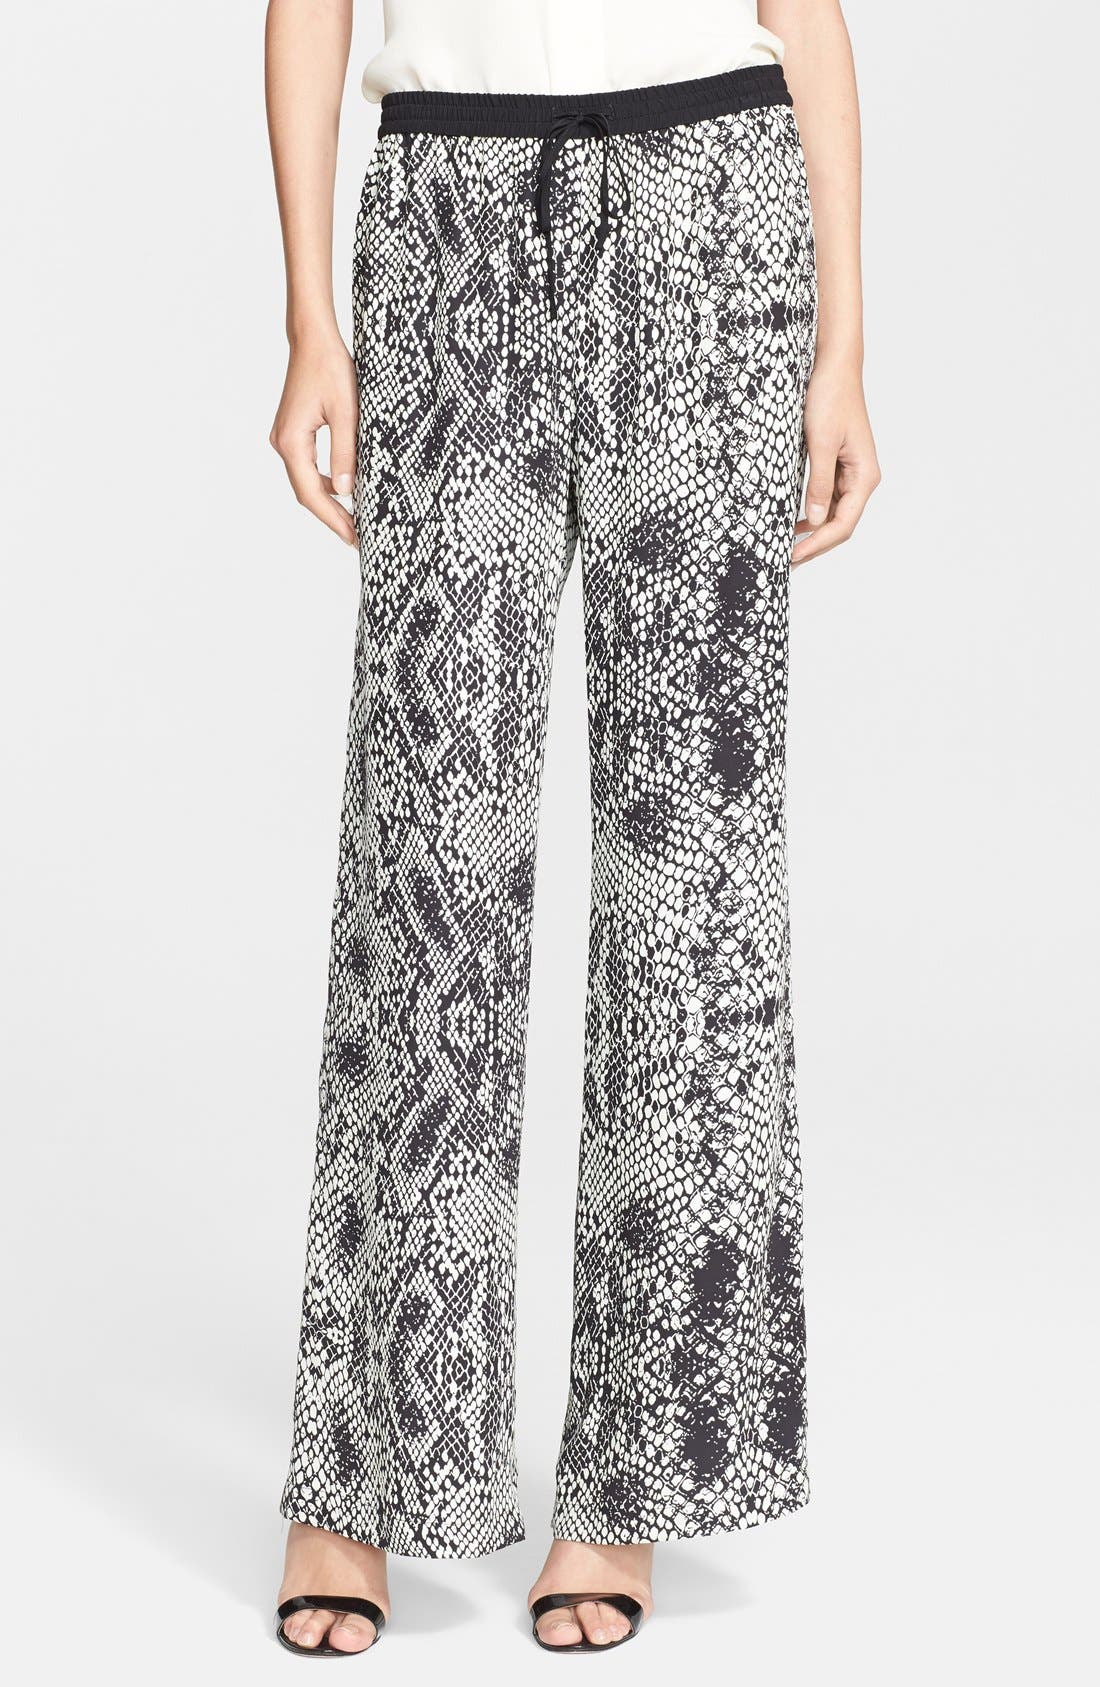 Alternate Image 1 Selected - Parker 'Nile' Print Wide Leg Silk Pants